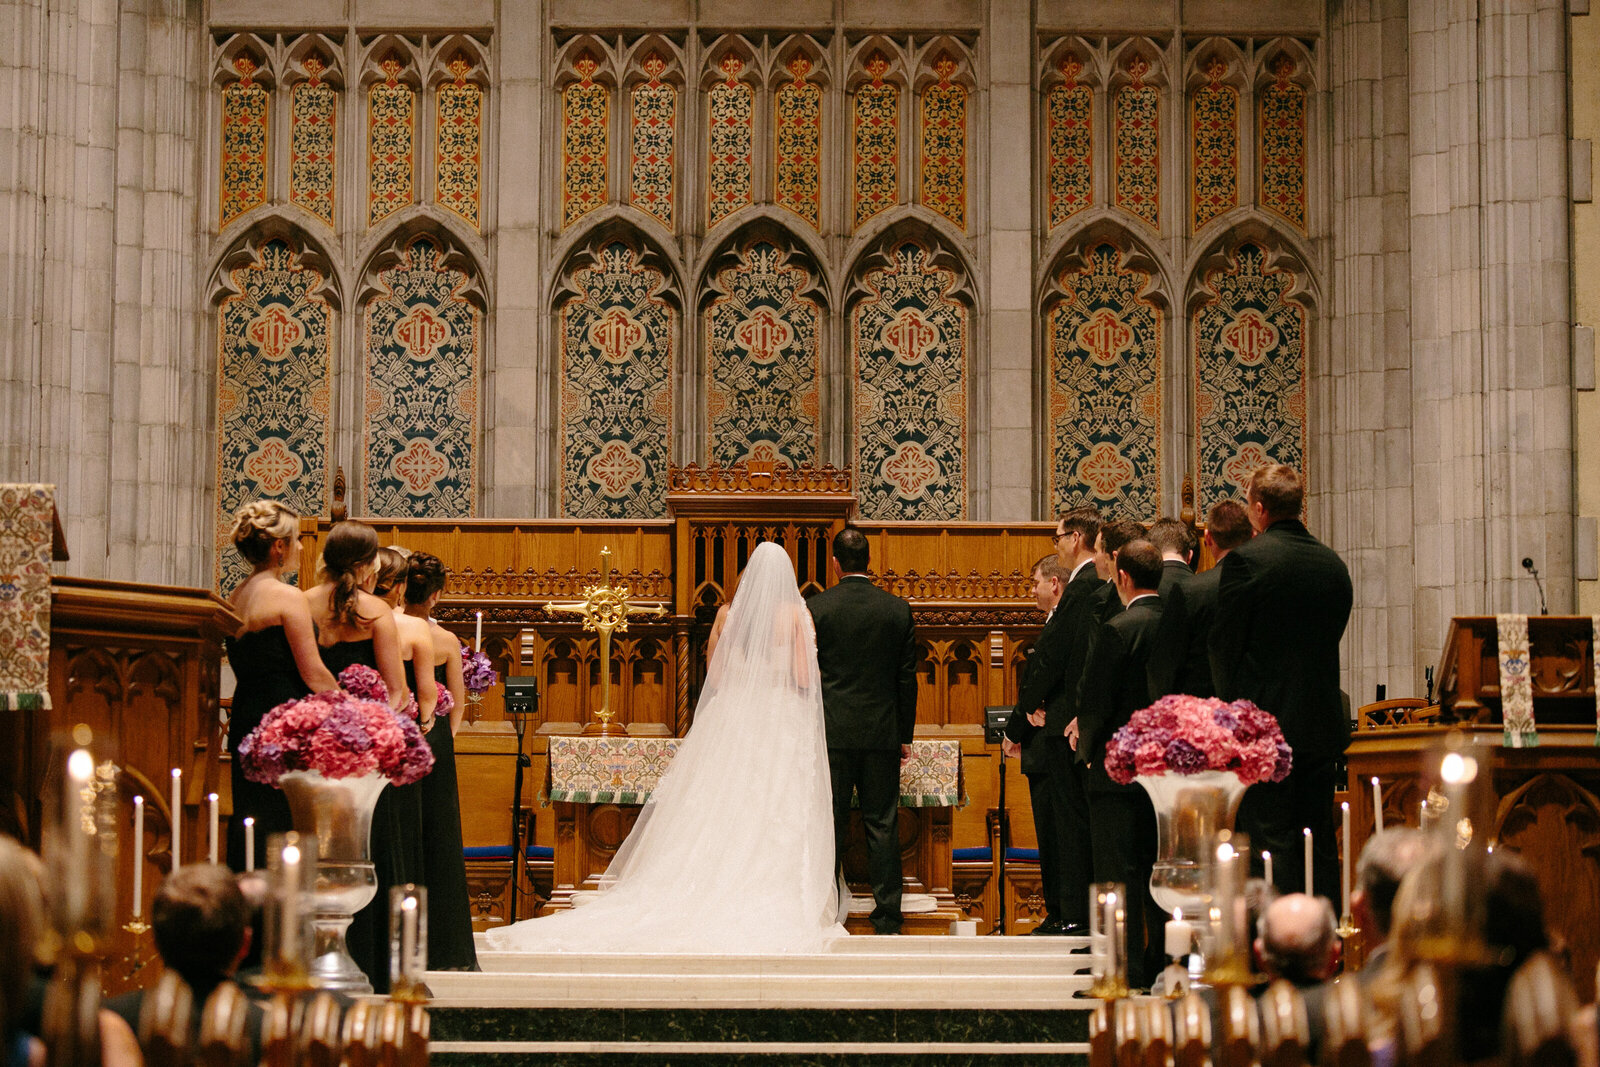 Debbie+ Review+_+christinaleighevents.com+_+The+Mayo+Hotel+Weddings+_+Christina+Leigh+Events+Wedding+Planning+and+Design+_+Josh+McCullock+Photography+_+Tulsa+Oklahoma+Wedding+Coordination+and+Design++1